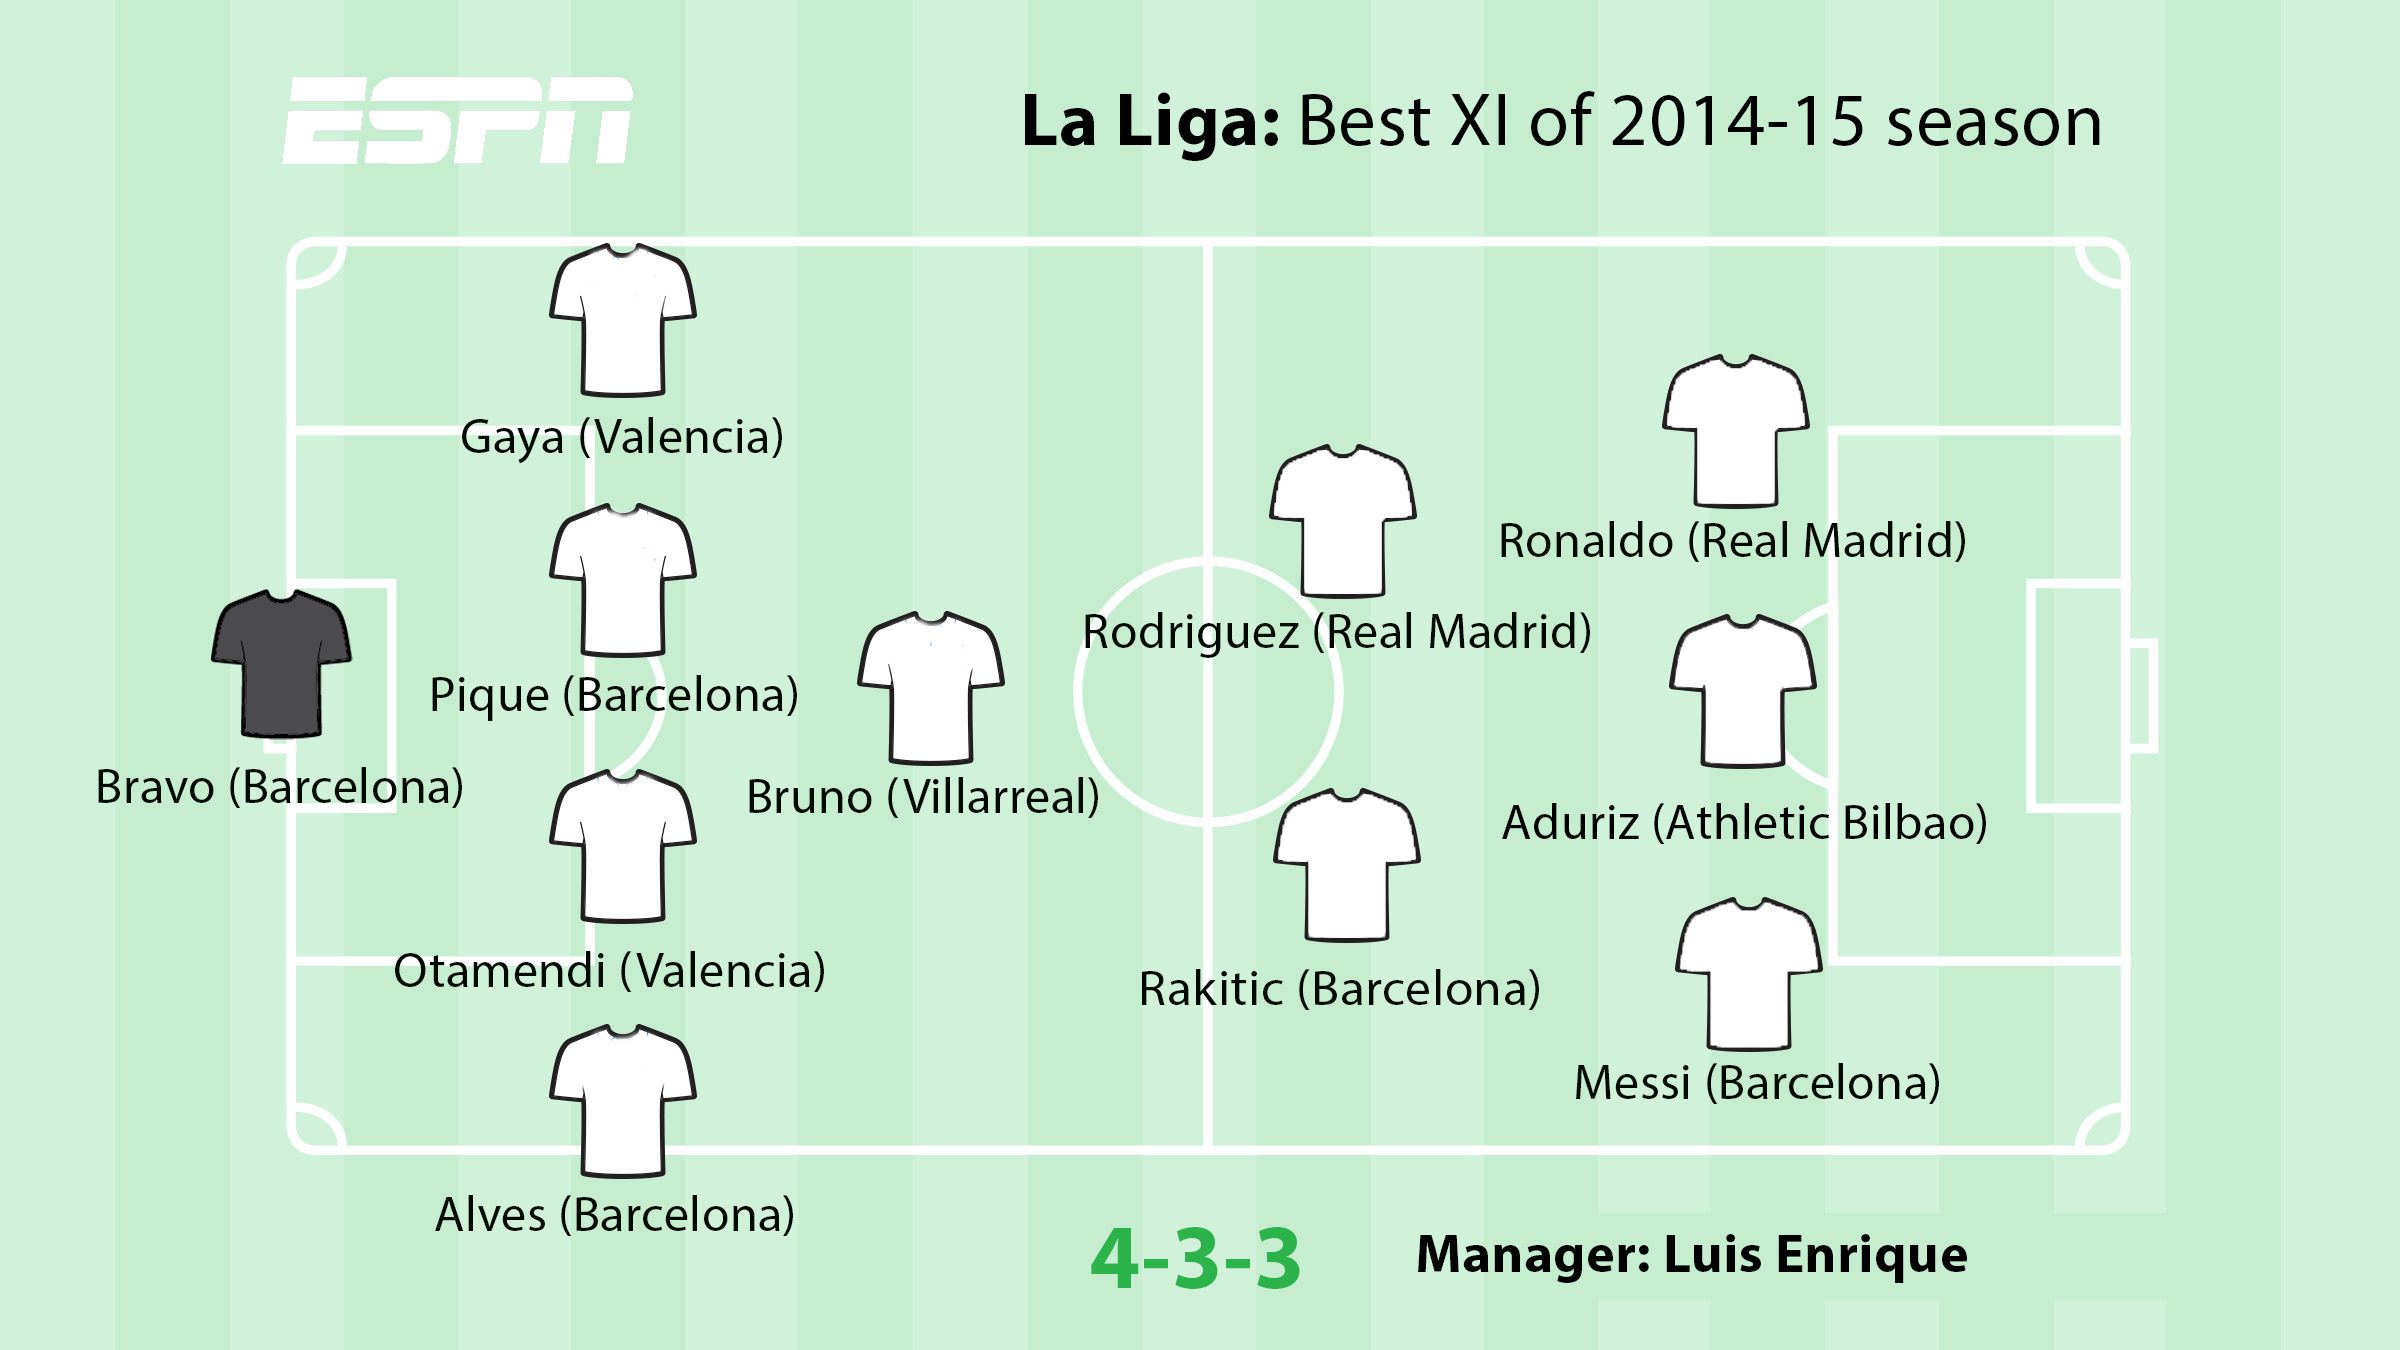 ESPN FC brings you the best starting XI from the 2014-15 La Liga season.